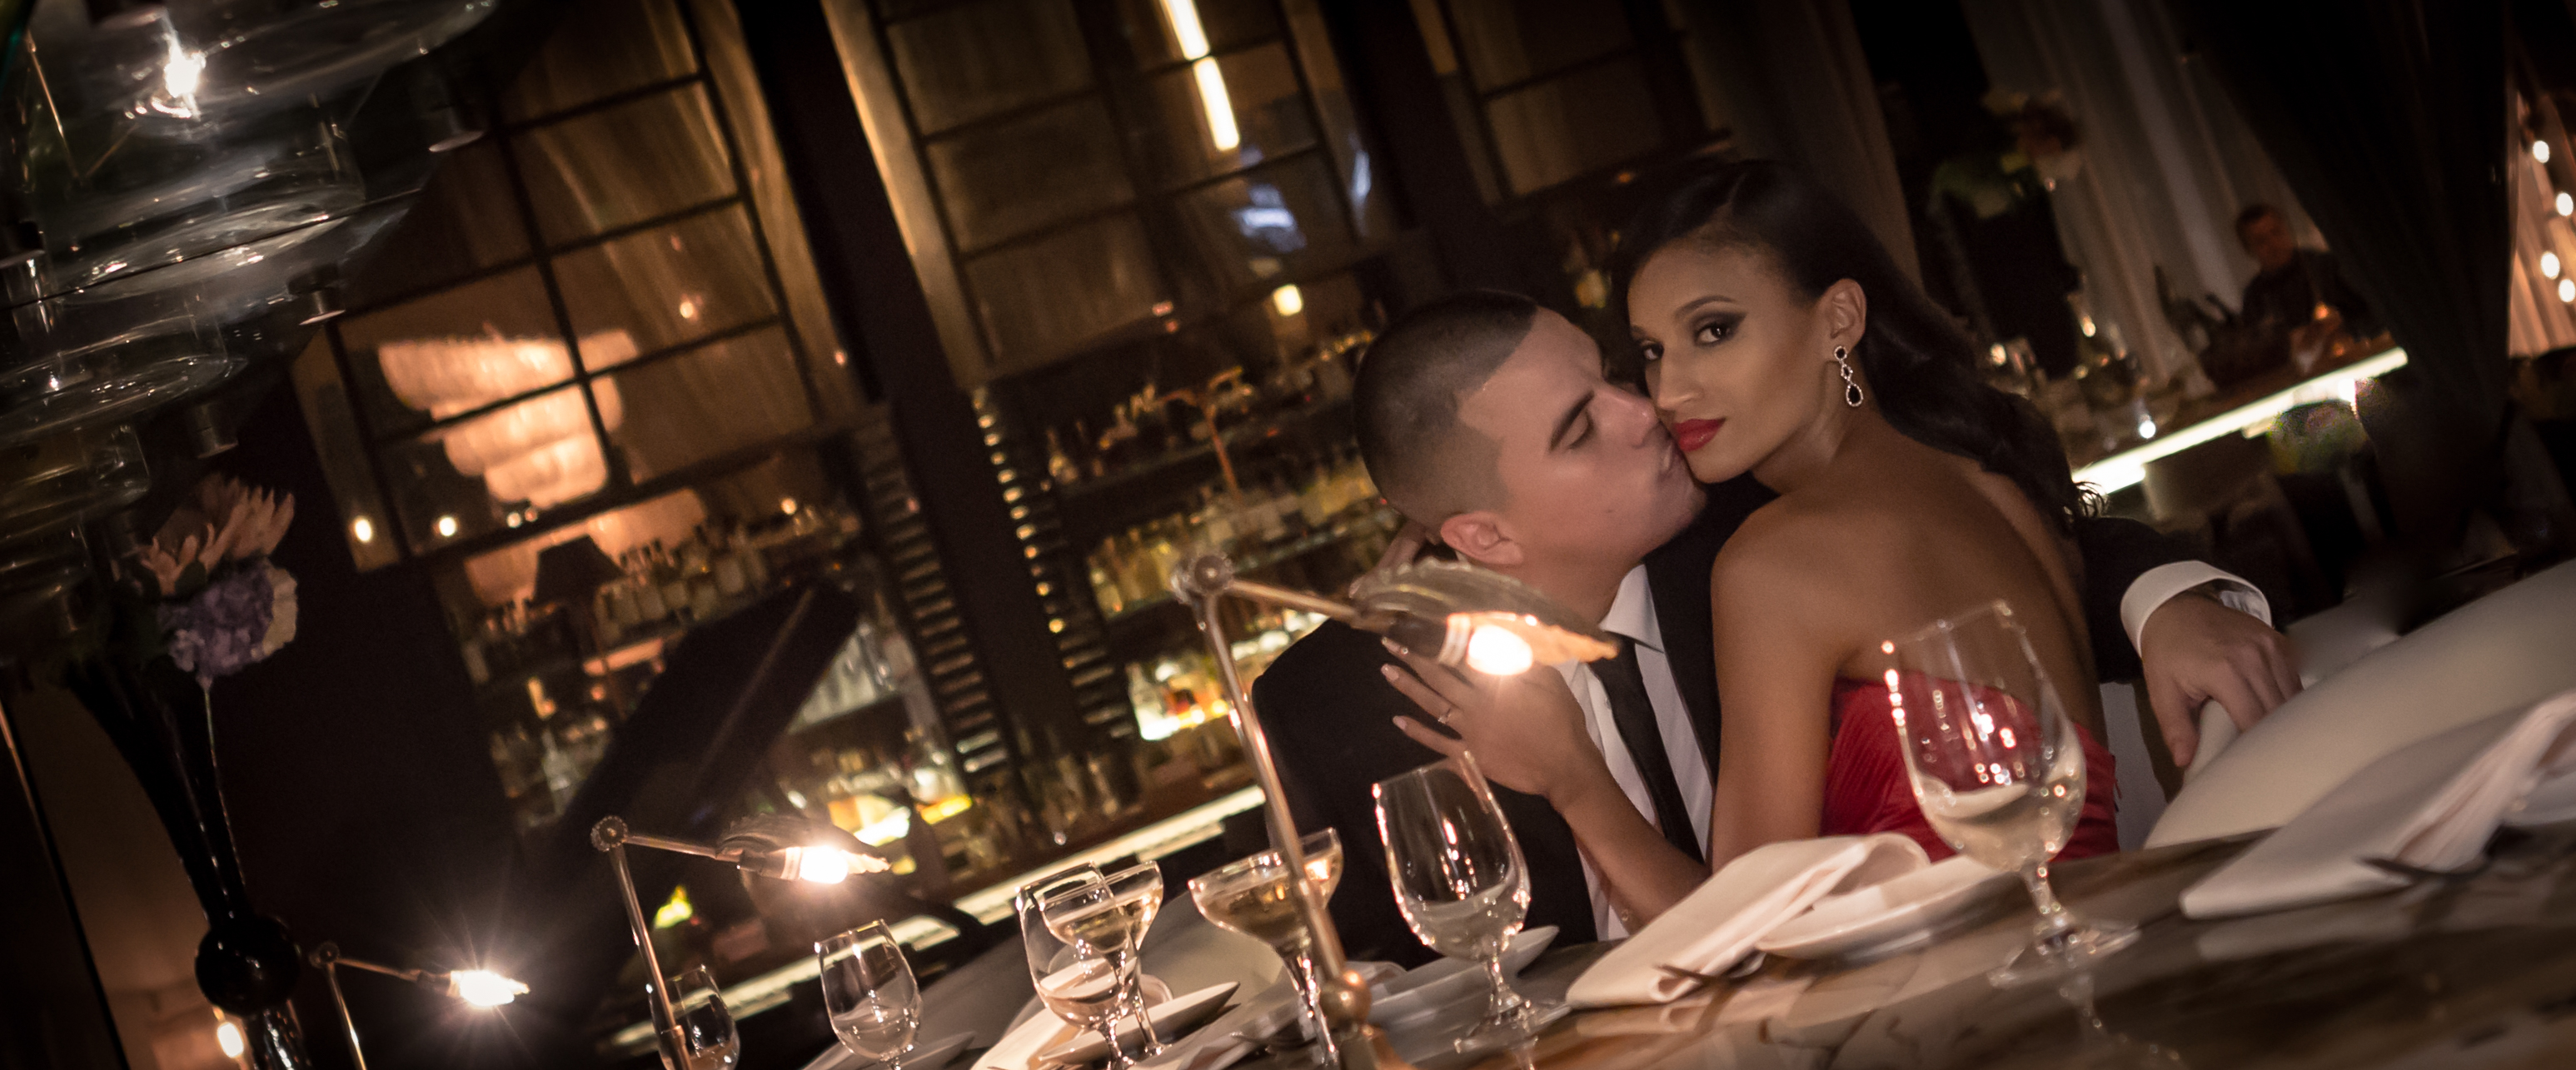 Miami Wedding Photographer image of Couple in Tamarina italian restaurant in Brickell area of Miami, Florida